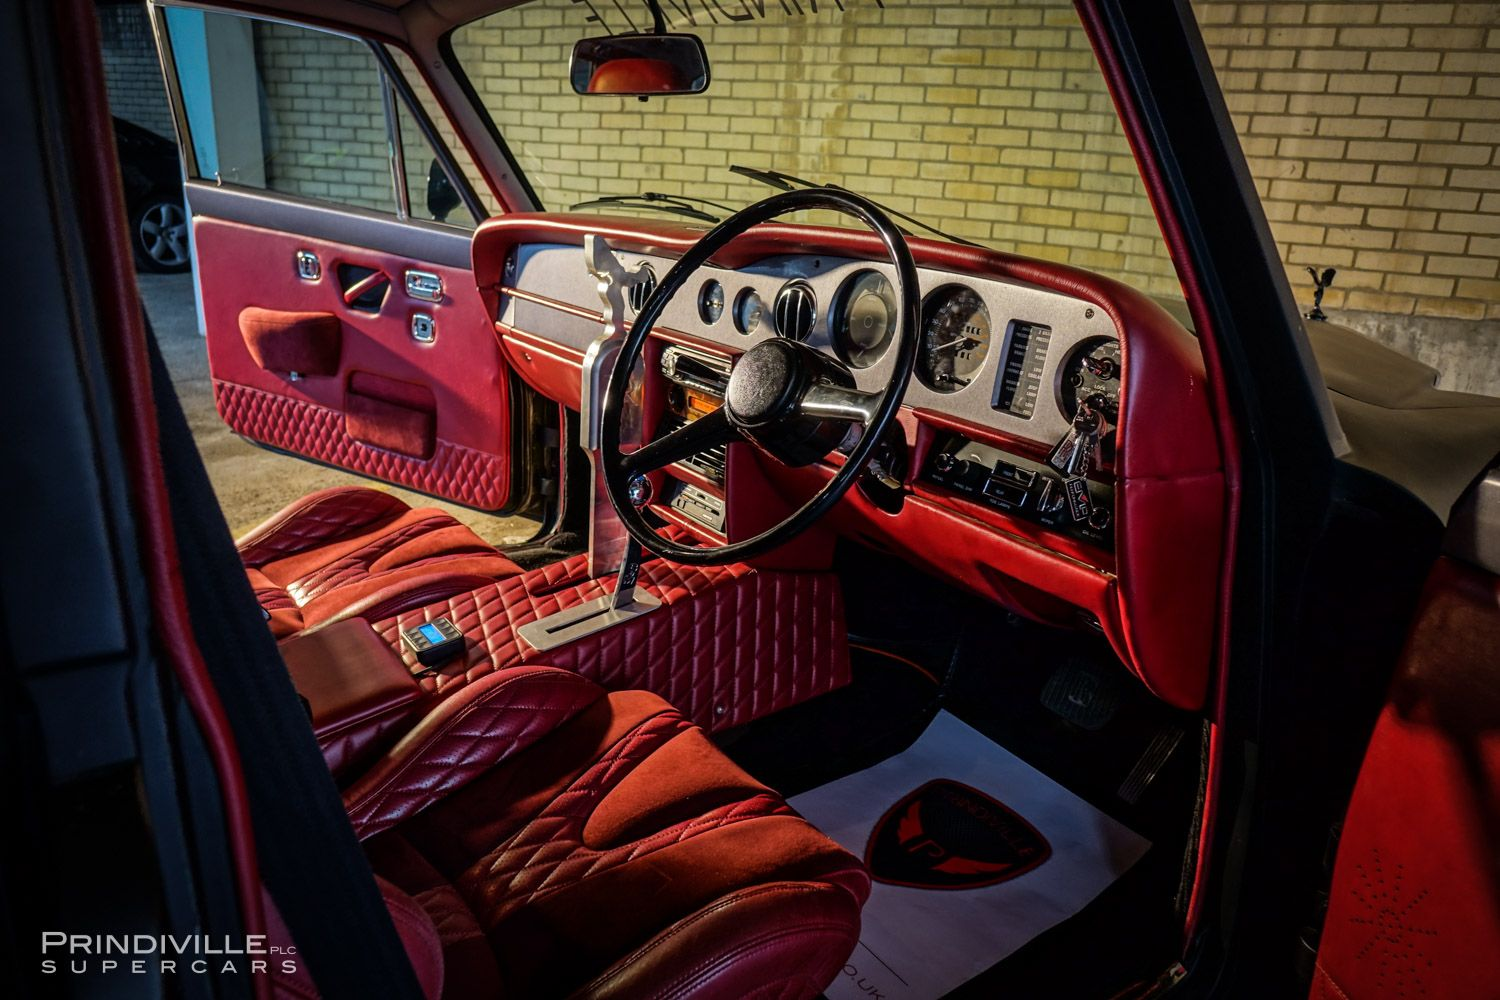 Prindiville Are Delighted To Offer This One Off Custom 1979 Rolls Royce Silver Shadow Finished In Matt Rolls Royce Silver Shadow Supercars For Sale Super Cars